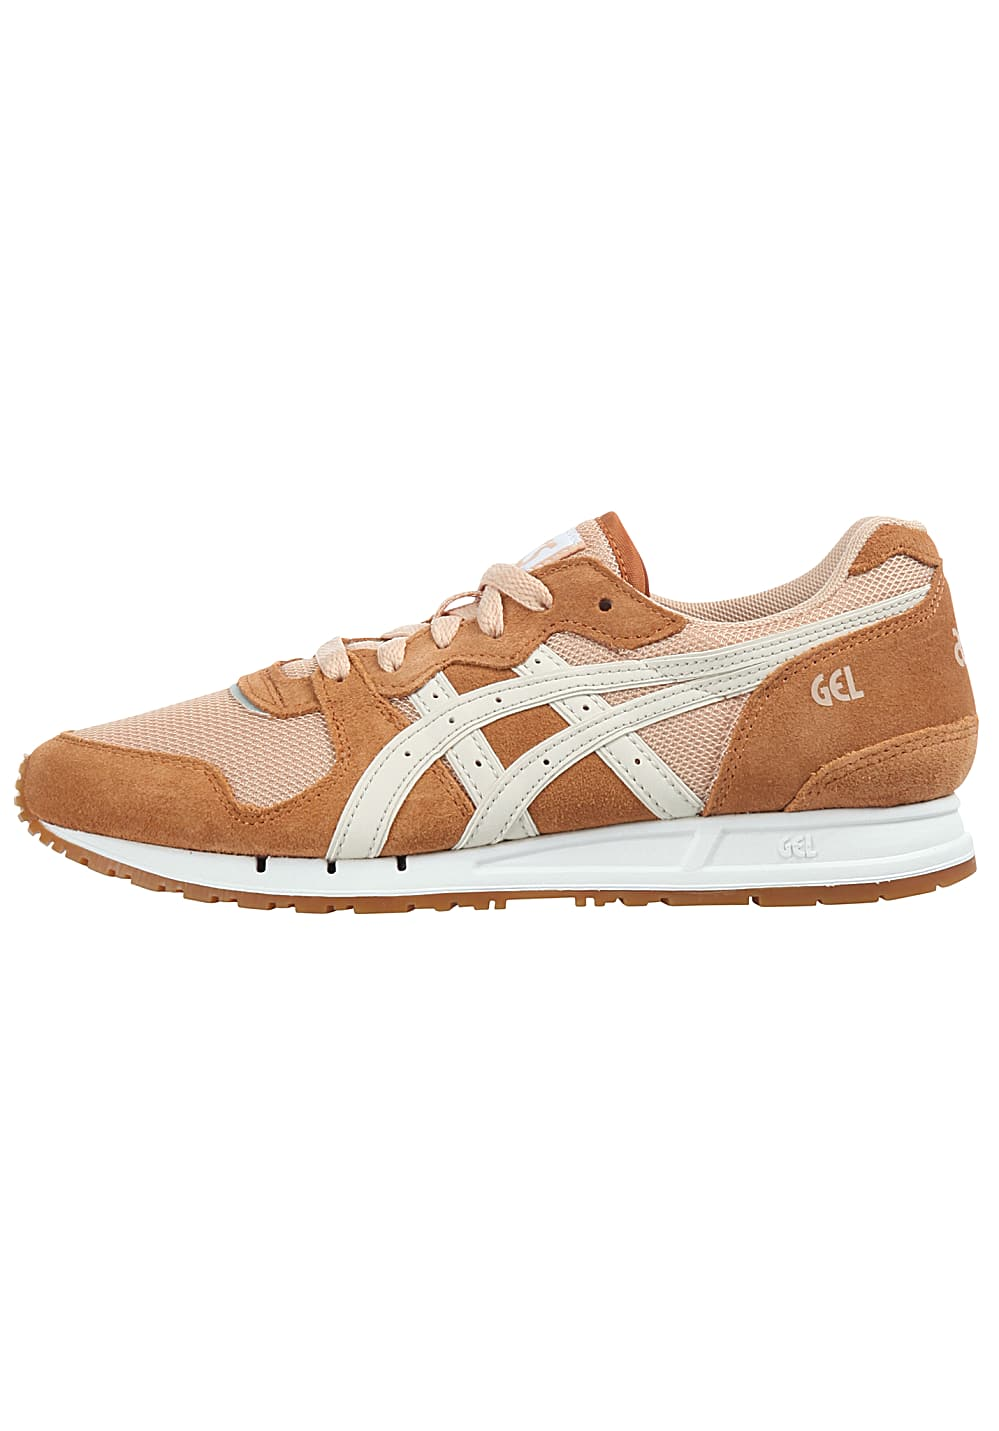 new styles 61cc0 93992 Asics Tiger Gel-Movimentum - Sneakers for Women - Brown